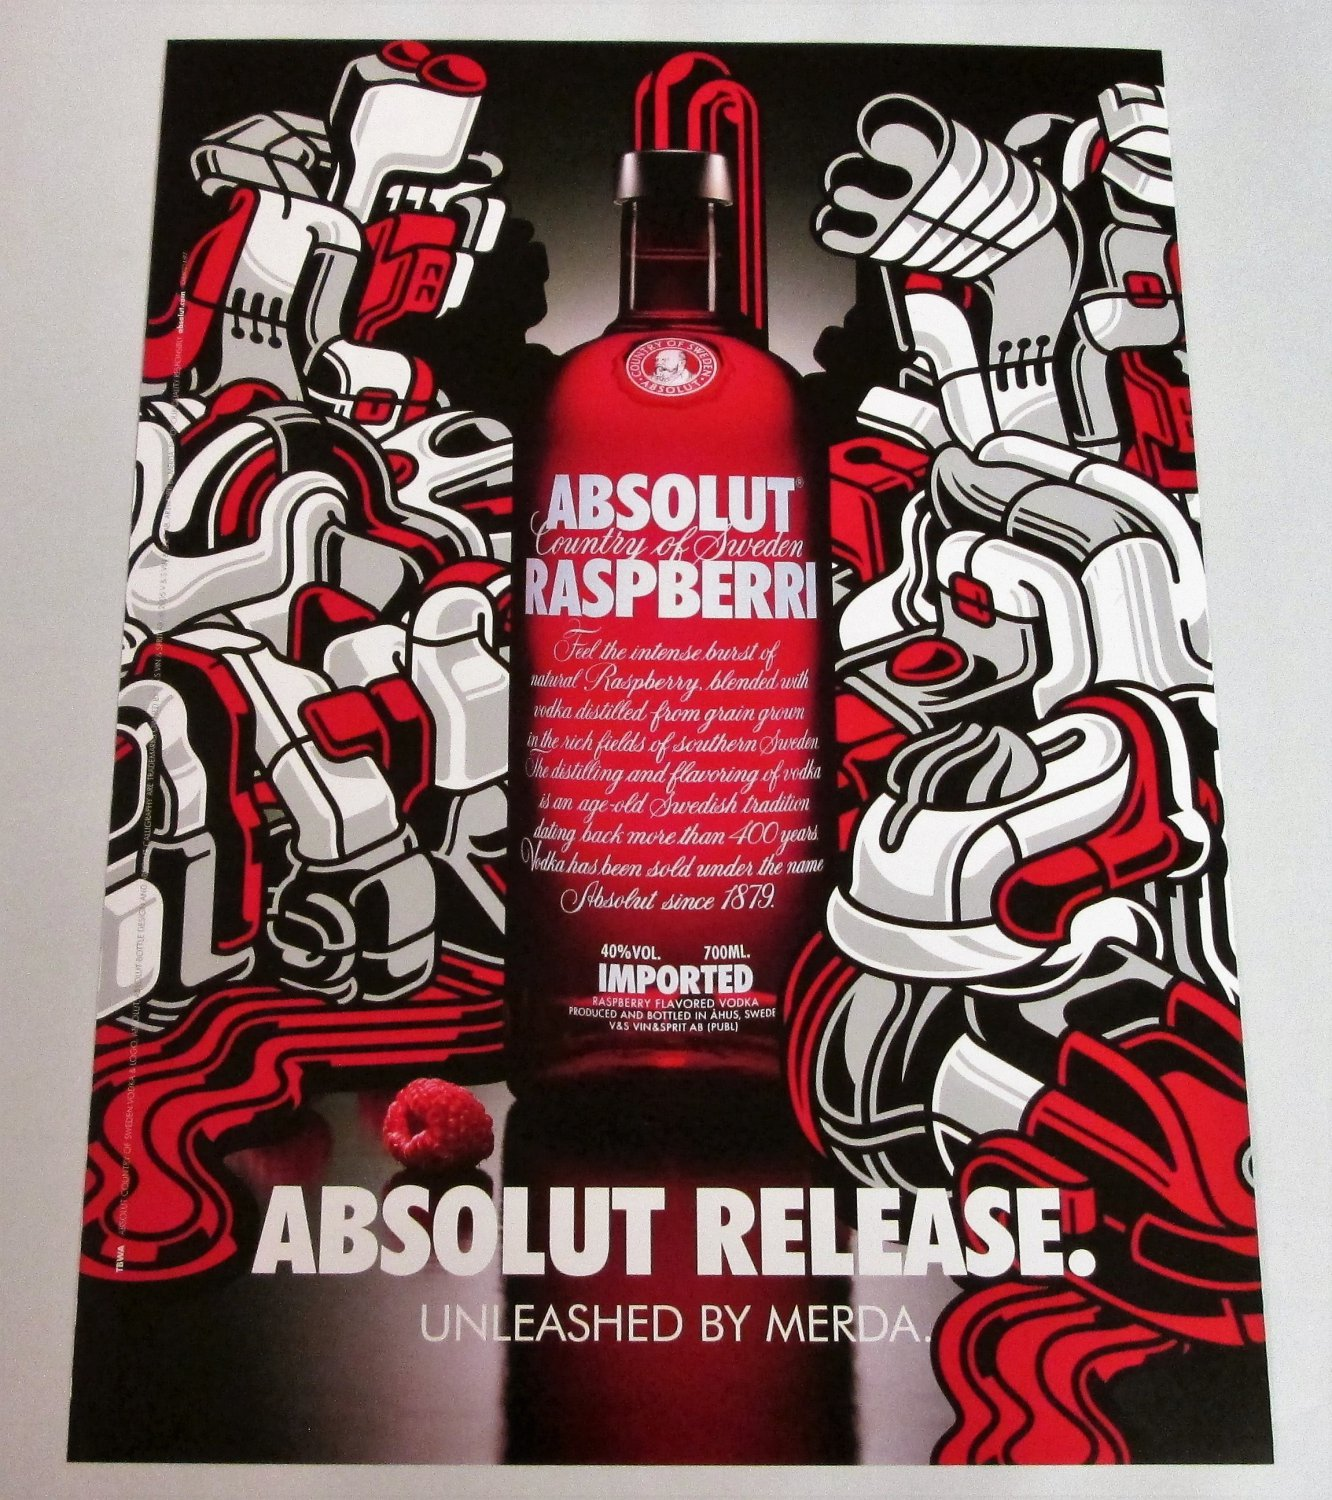 ABSOLUT RELEASE UNLEASHED BY MERDA Australian Vodka Magazine Ad RARE